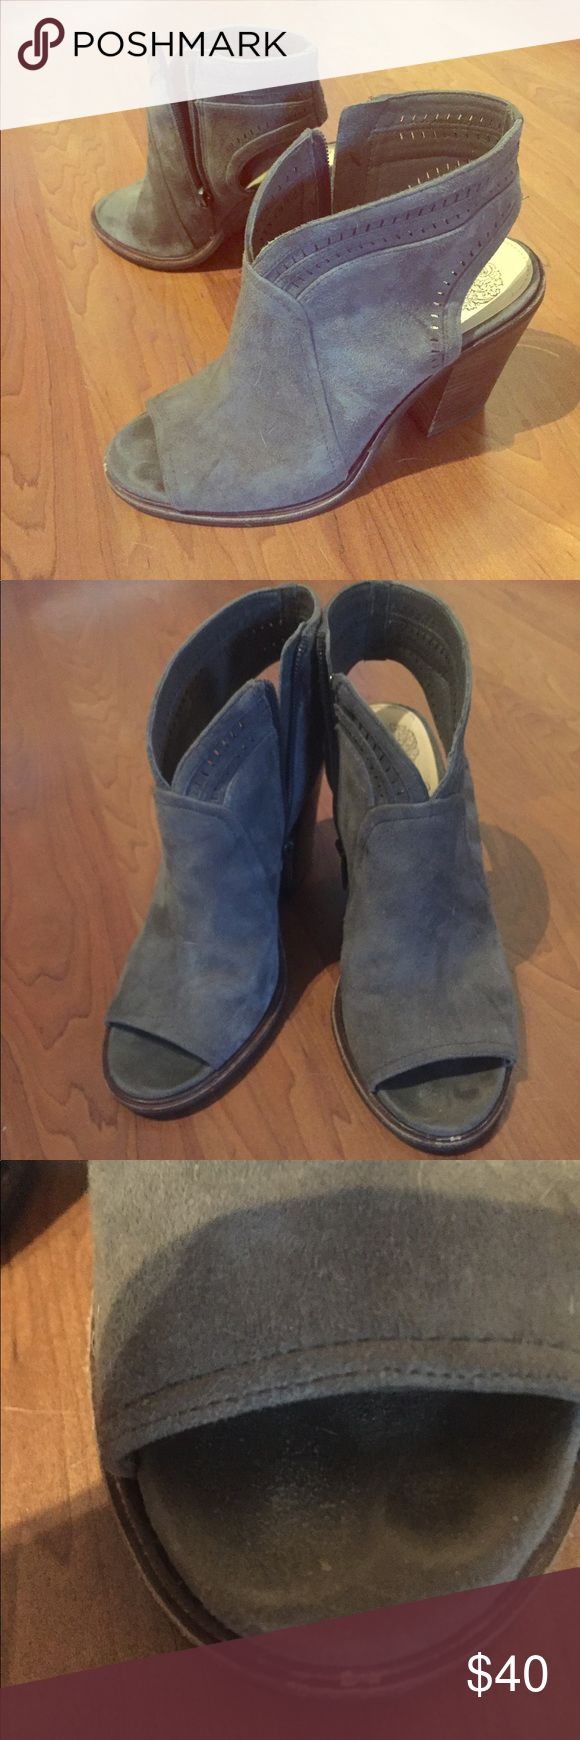 Gray Vince Camuto booties. These were a huge hit during last years Nordstrom Anniversary sale!  These were barely worn.  There is a small scuff on the top of the right shoe, and sole of shoe is slightly worn - overall these are in great shape! Vince Camuto Shoes Ankle Boots & Booties